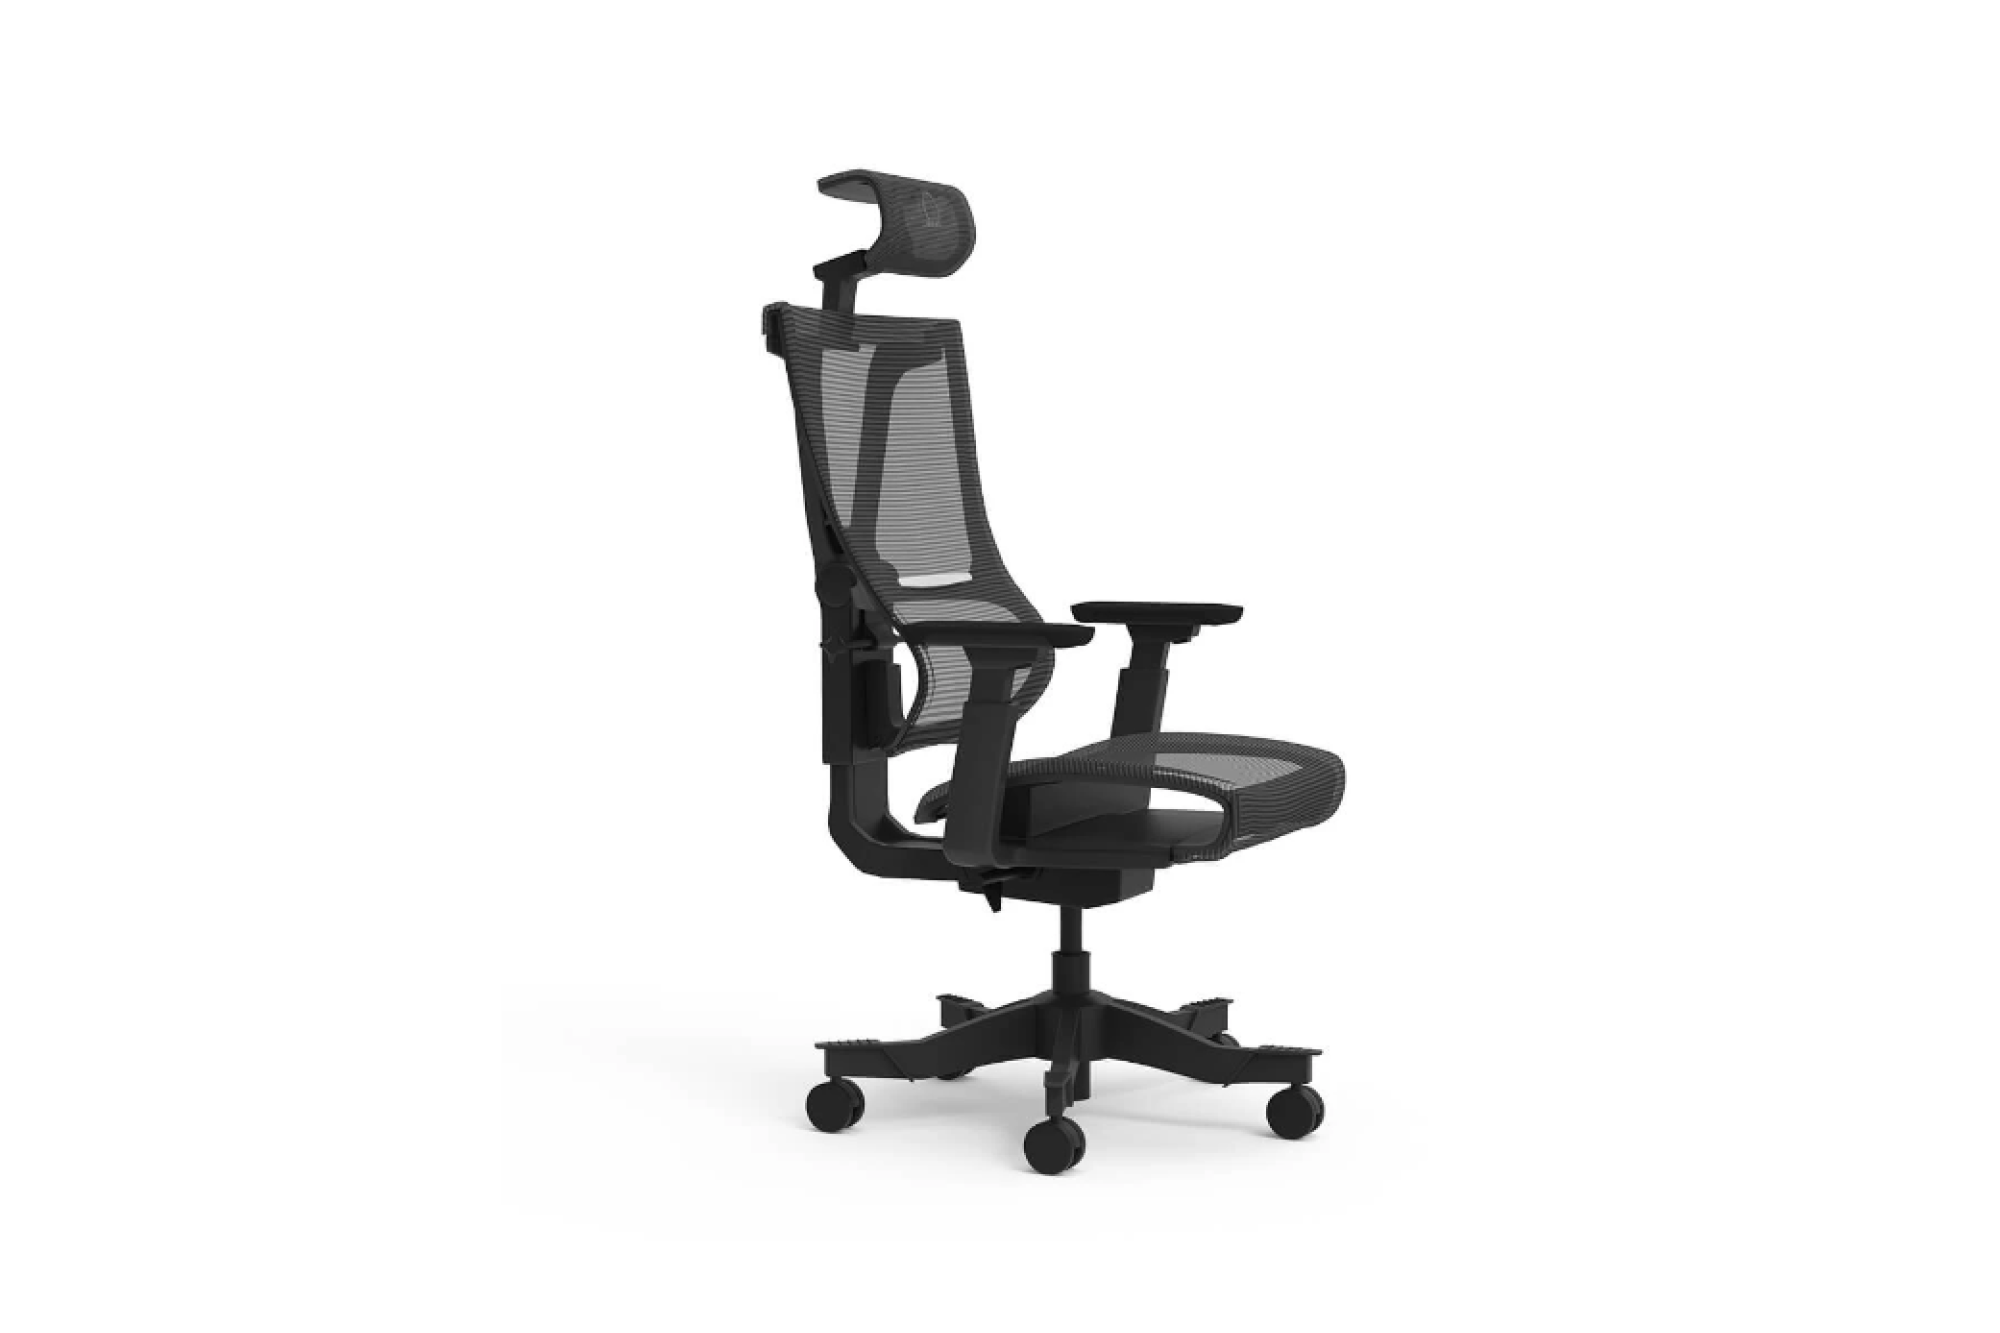 Working From Home Then It S Time To Upgrade Your Office Chair